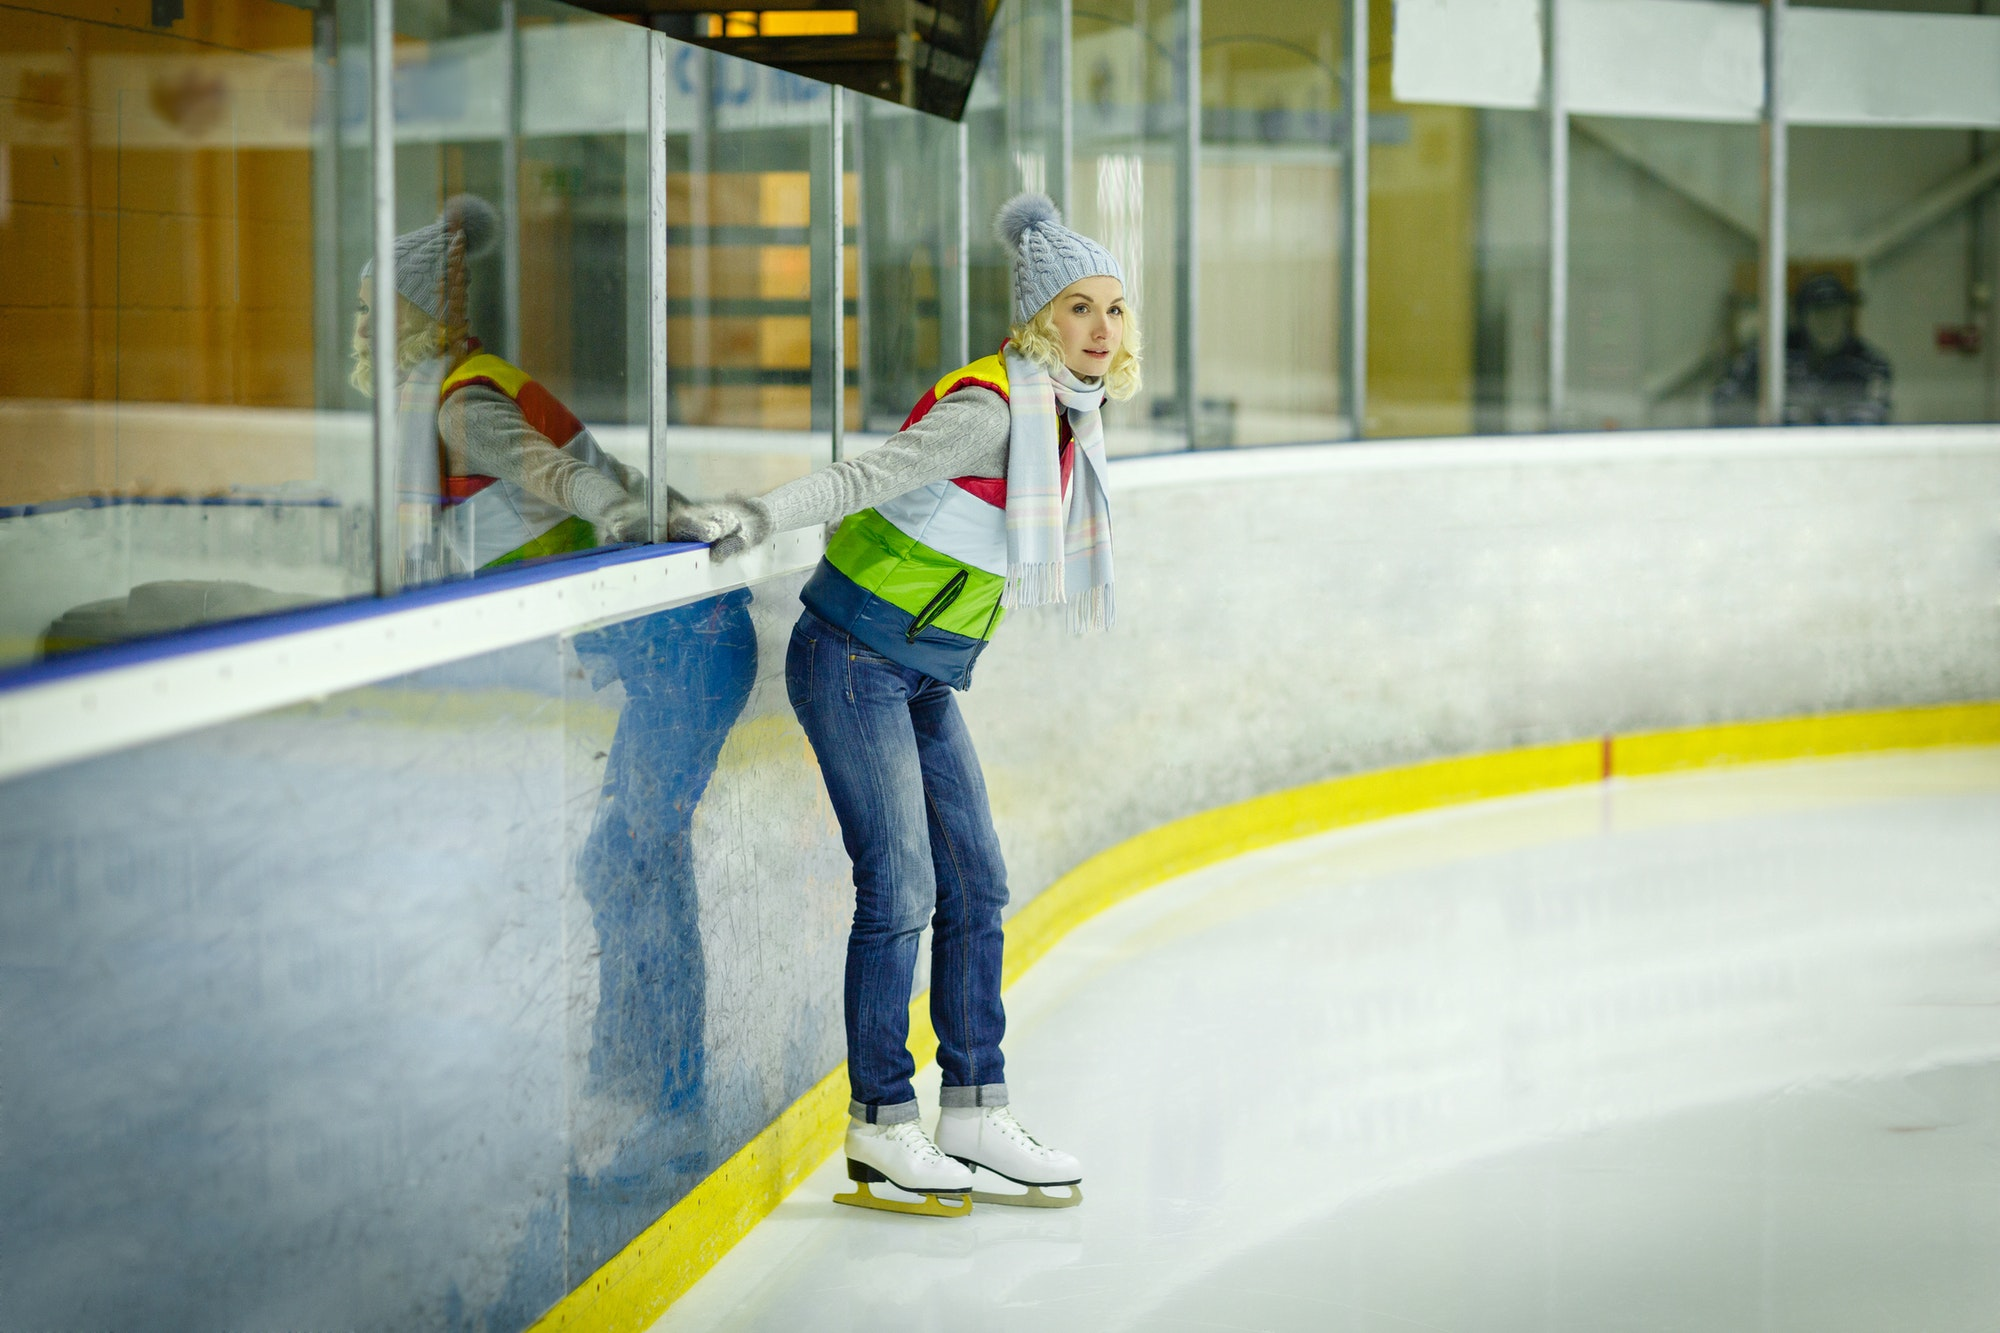 Beautiful girl in winter clothes and skates on ice rink